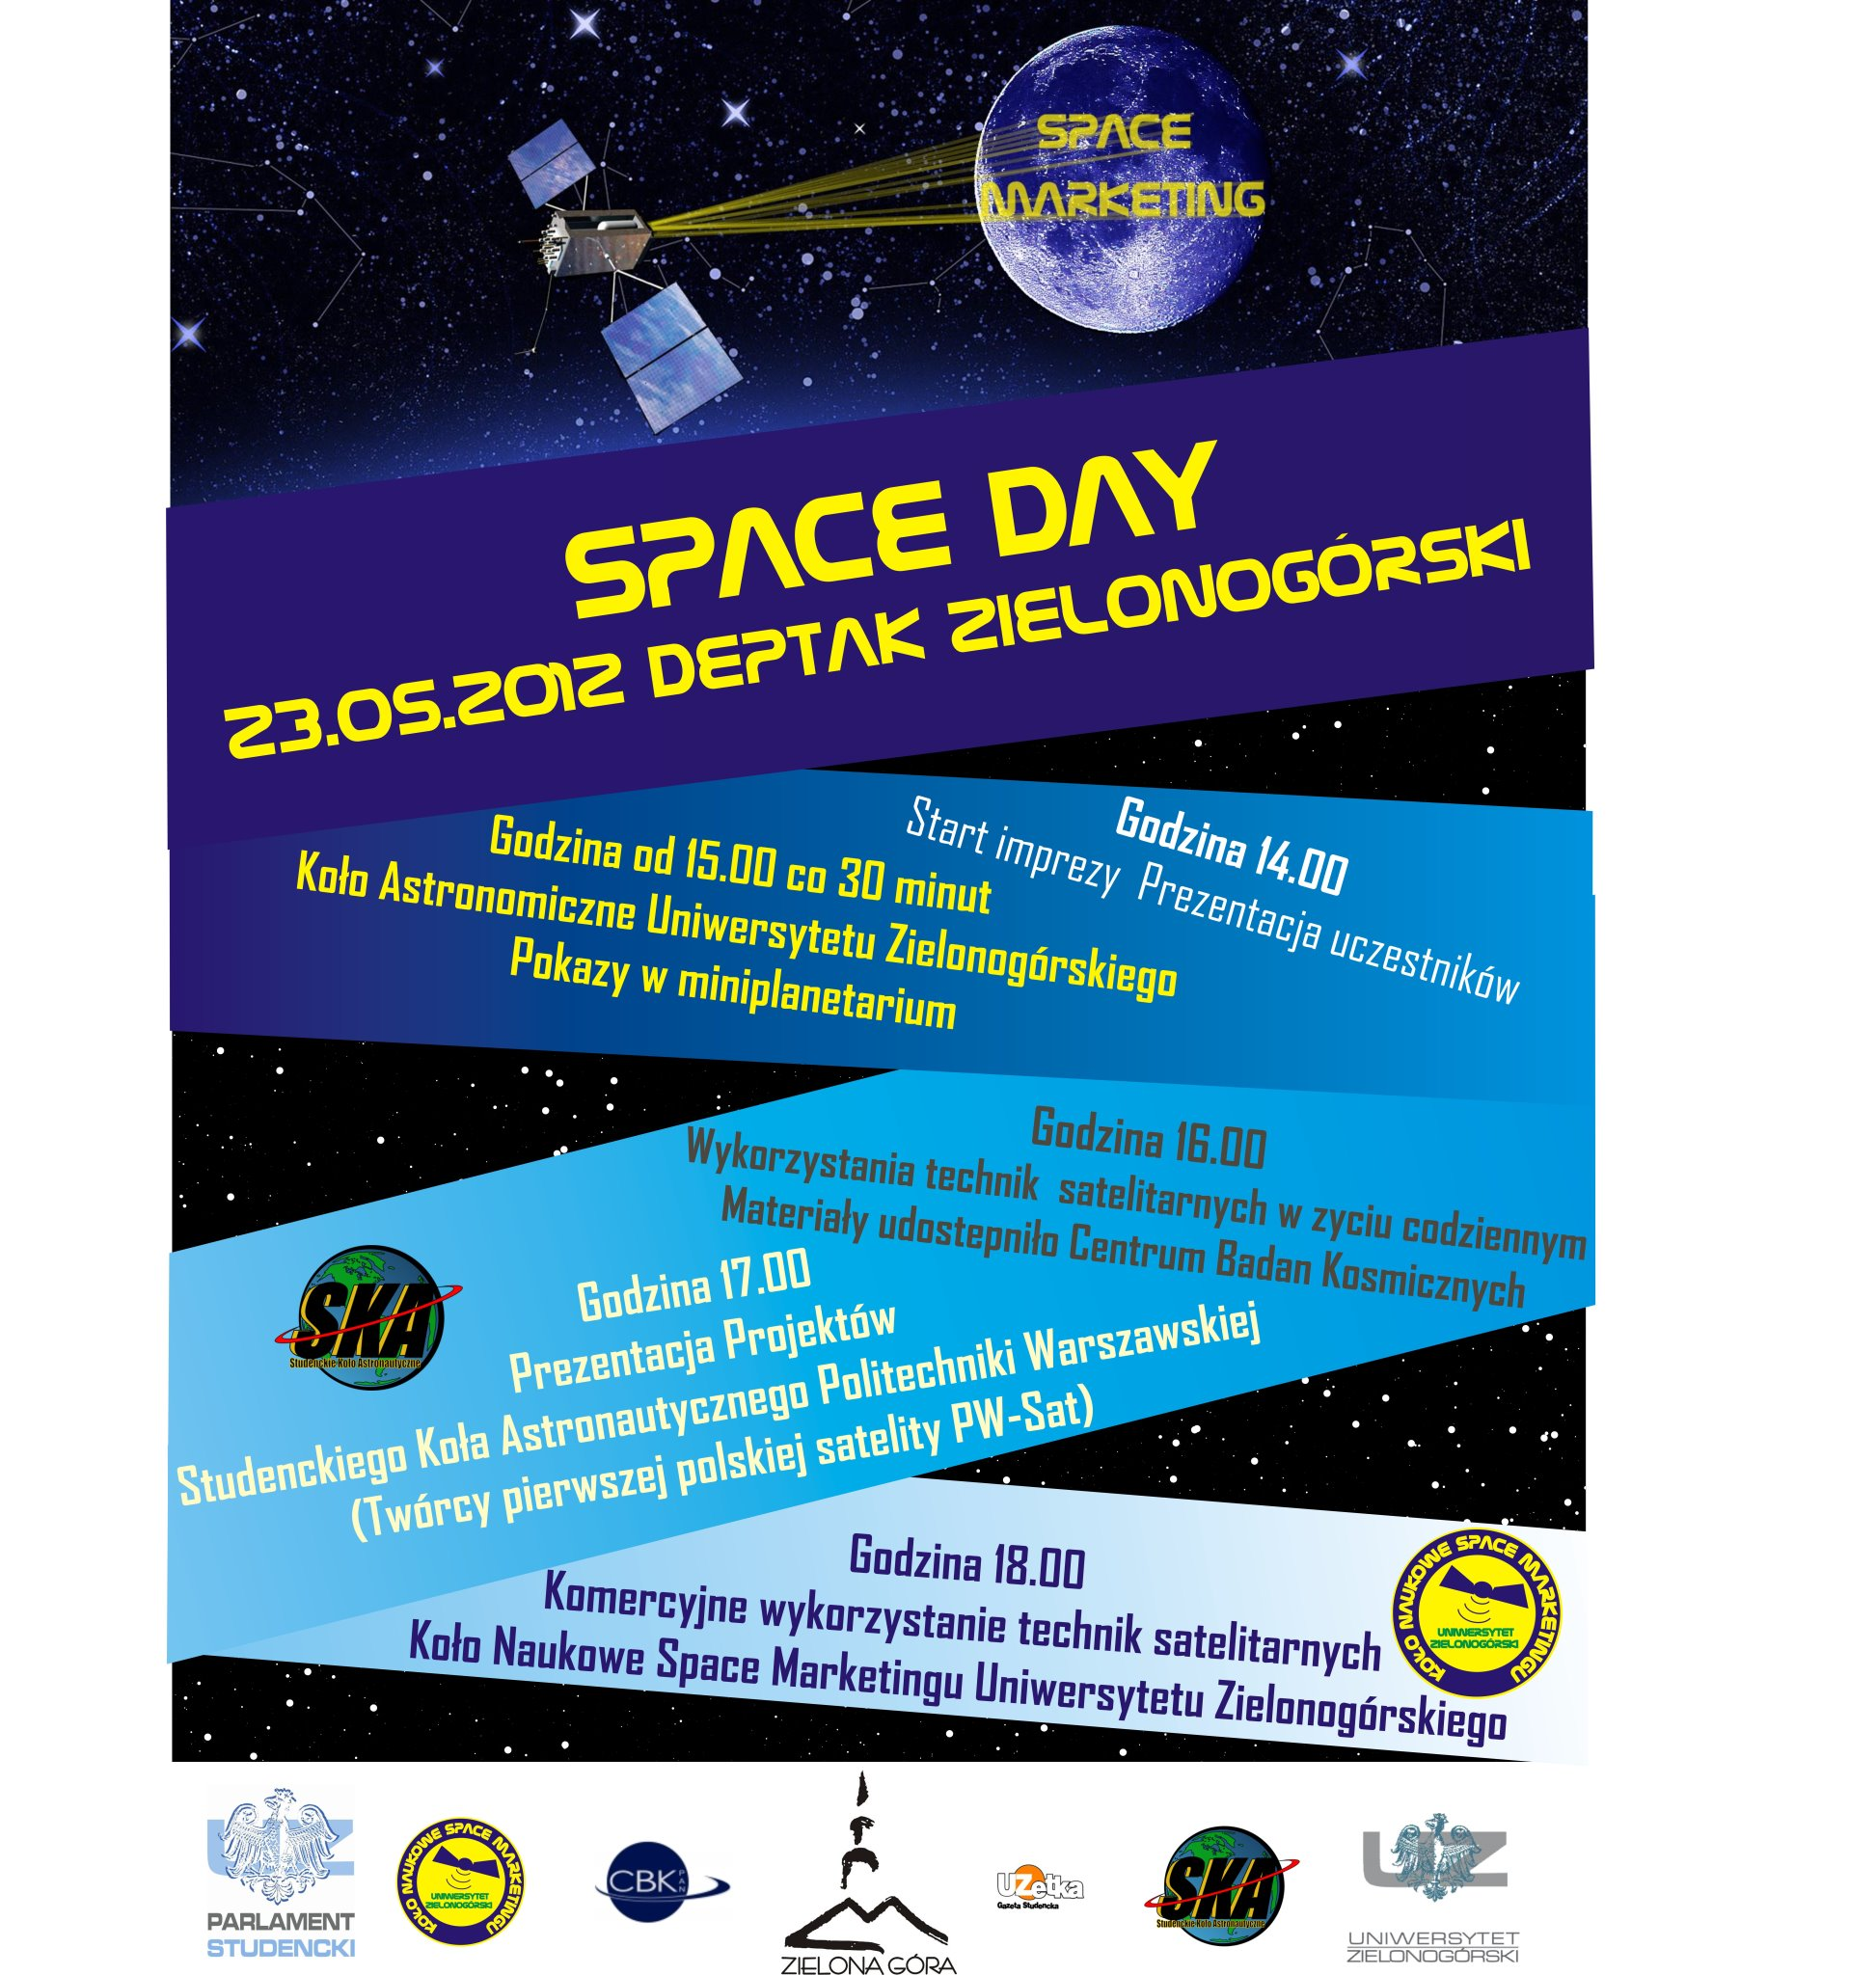 Space Day na zielonogórskim deptaku